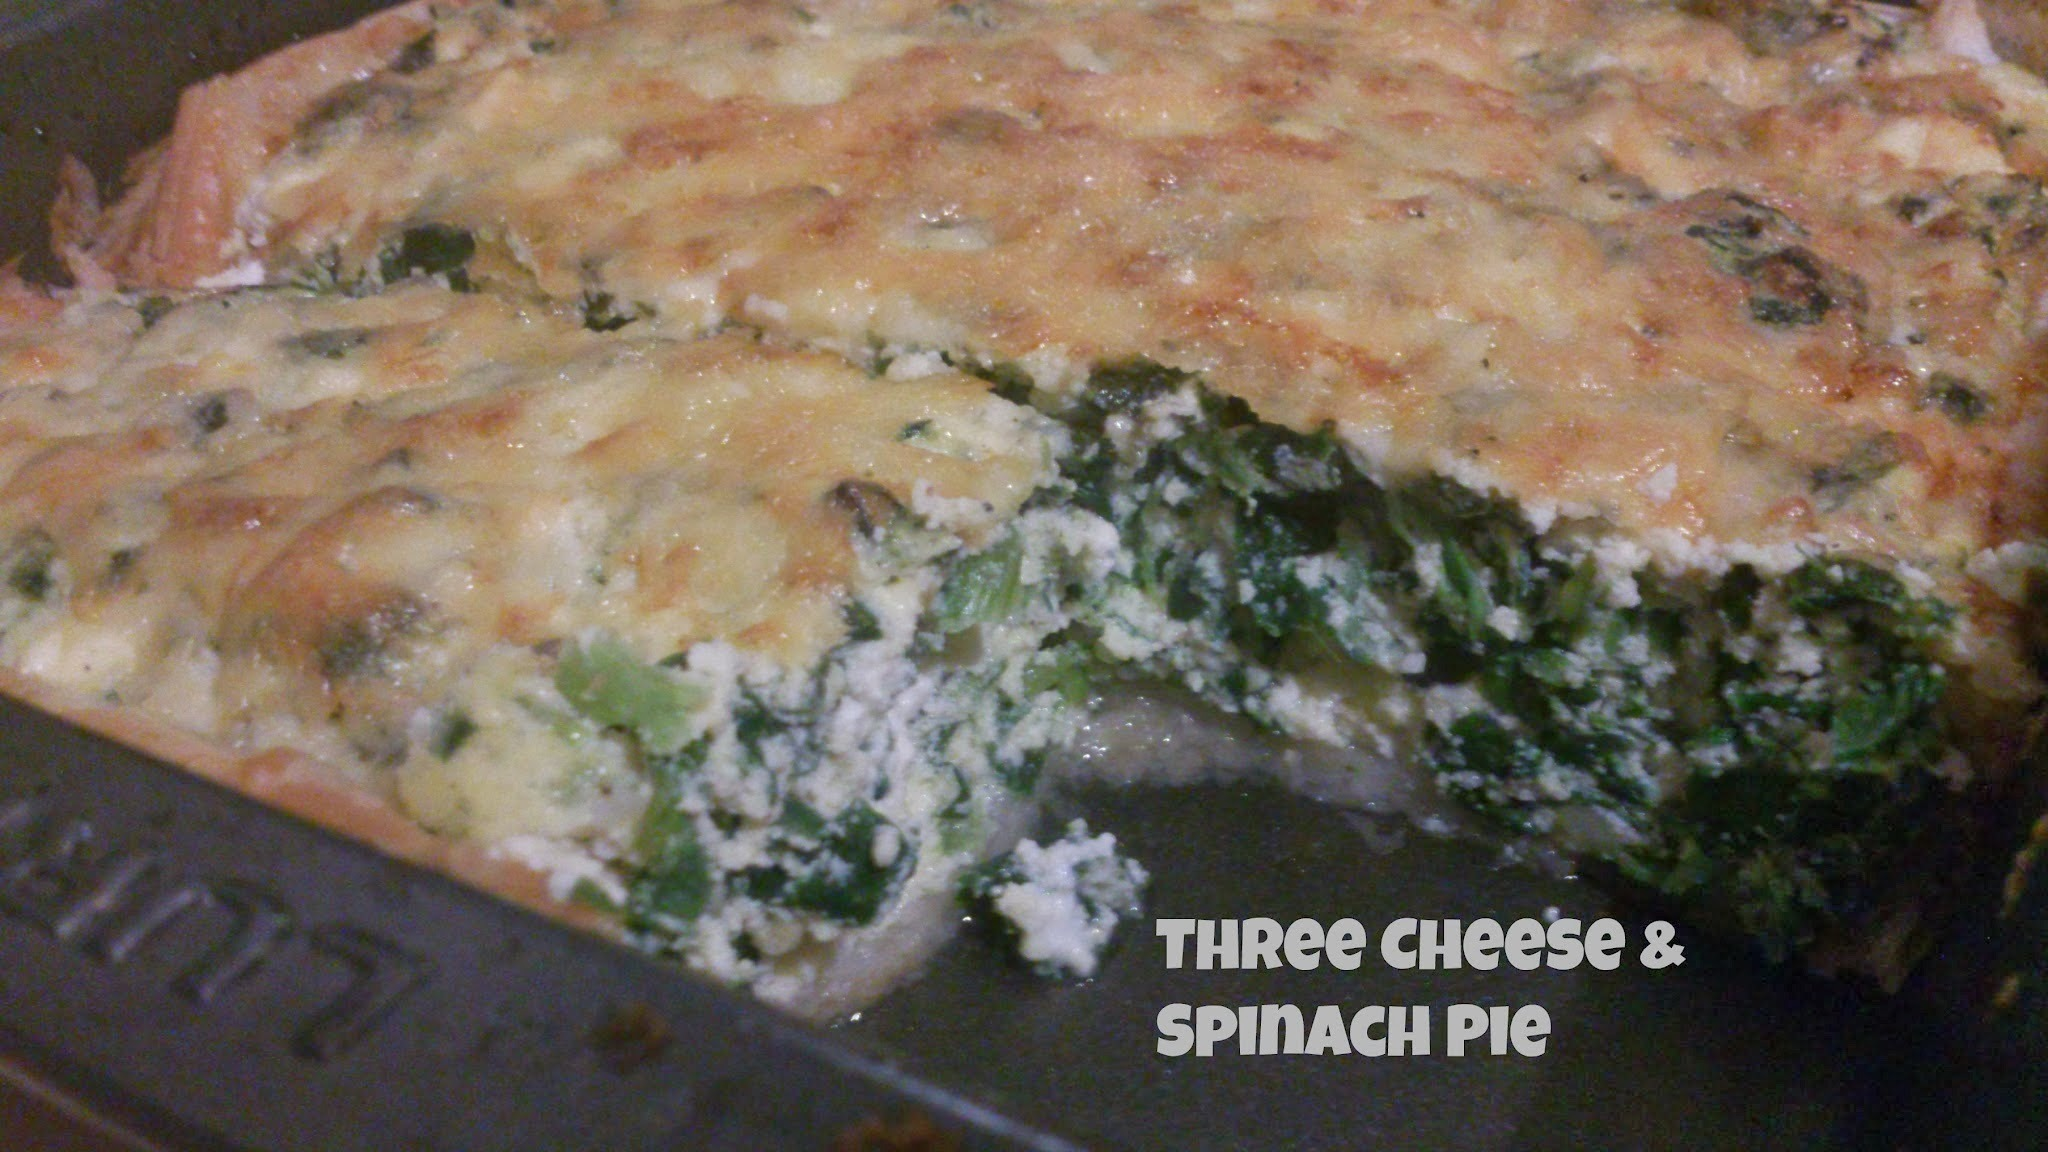 Three cheese & spinach pie